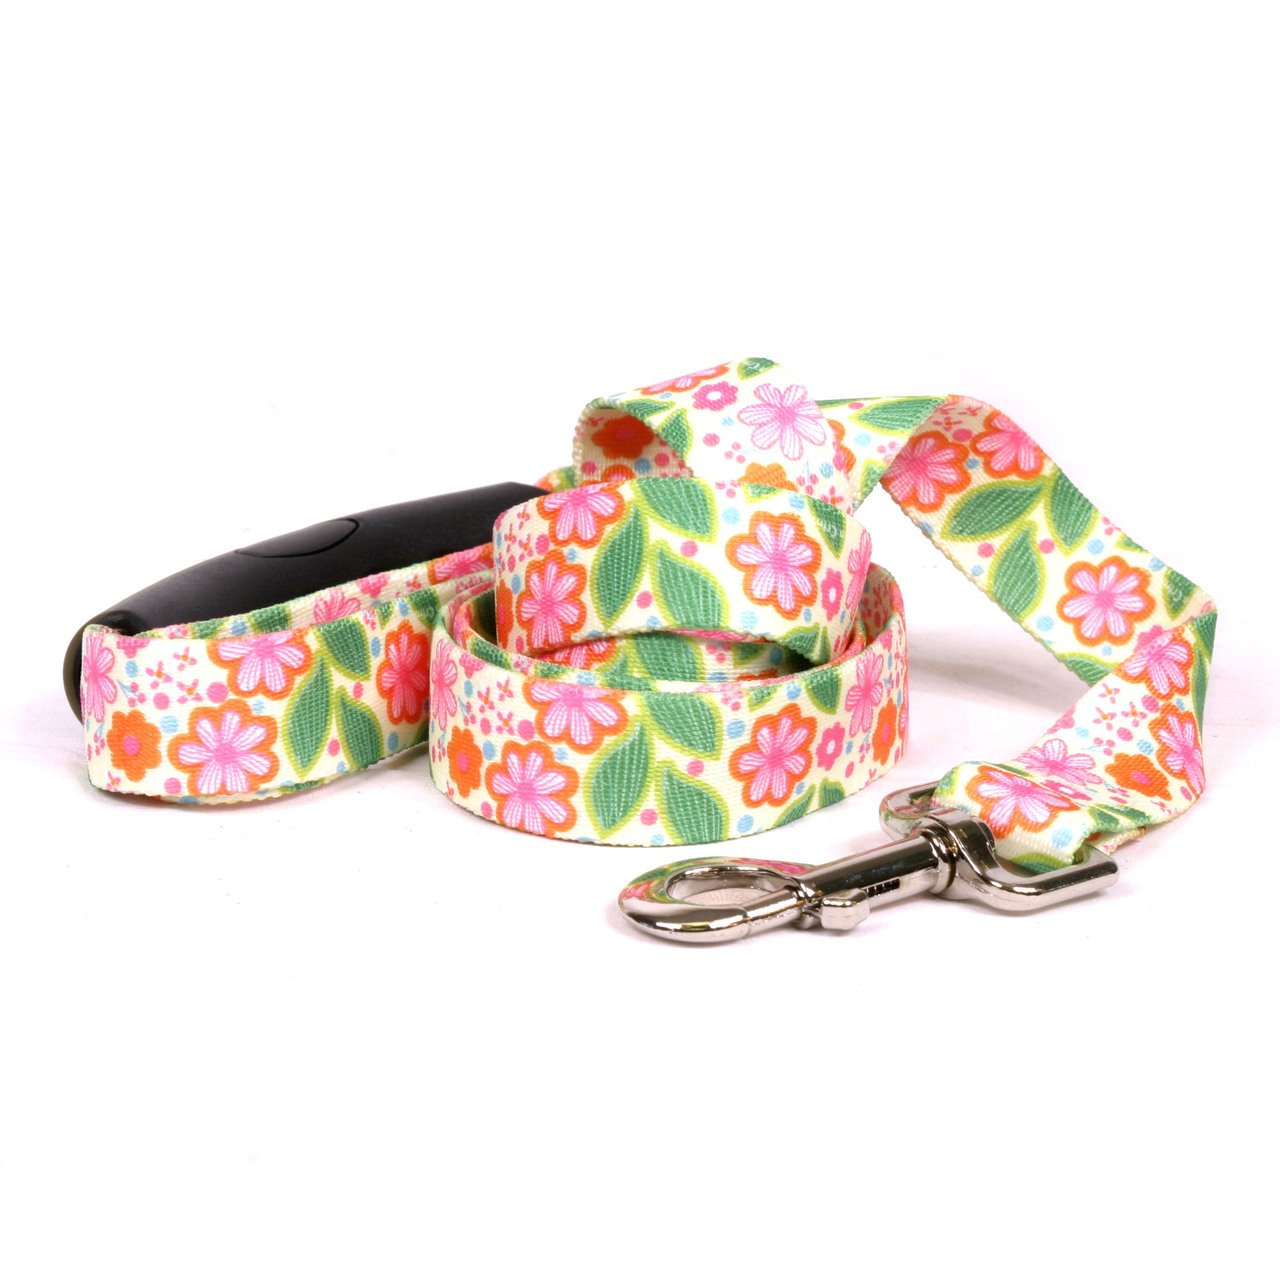 Yellow Dog Design Flower Patch Ez-Grip Dog Leash with Comfort Handle 1'' Wide and 5' (60'') Long, Large